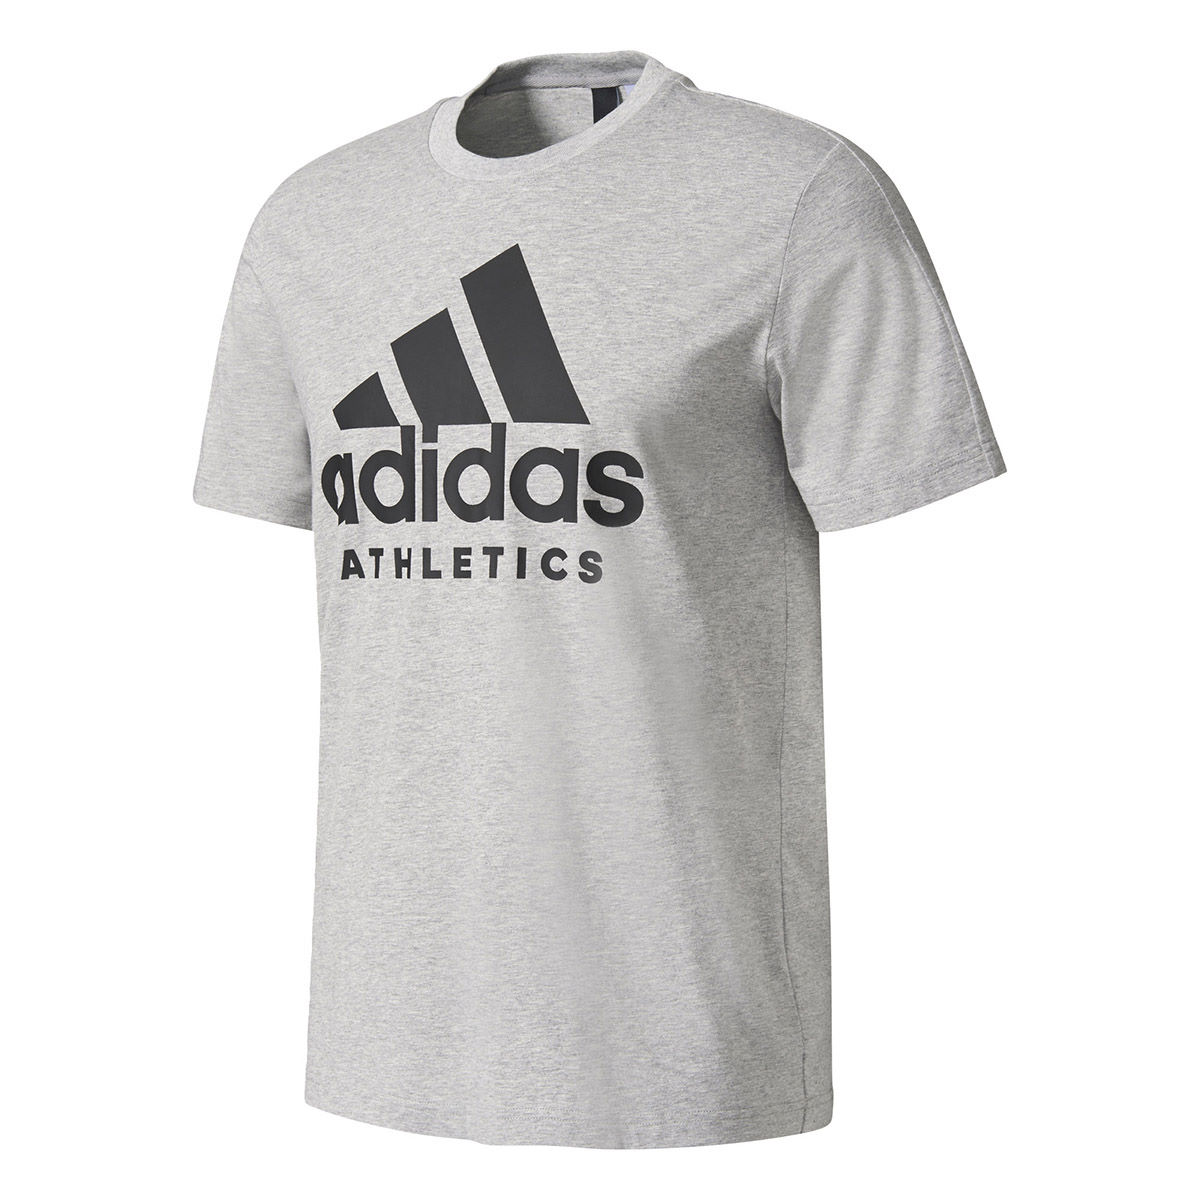 T-shirt Adidas Sport ID - 34/36 Medium Grey heather T-shirts